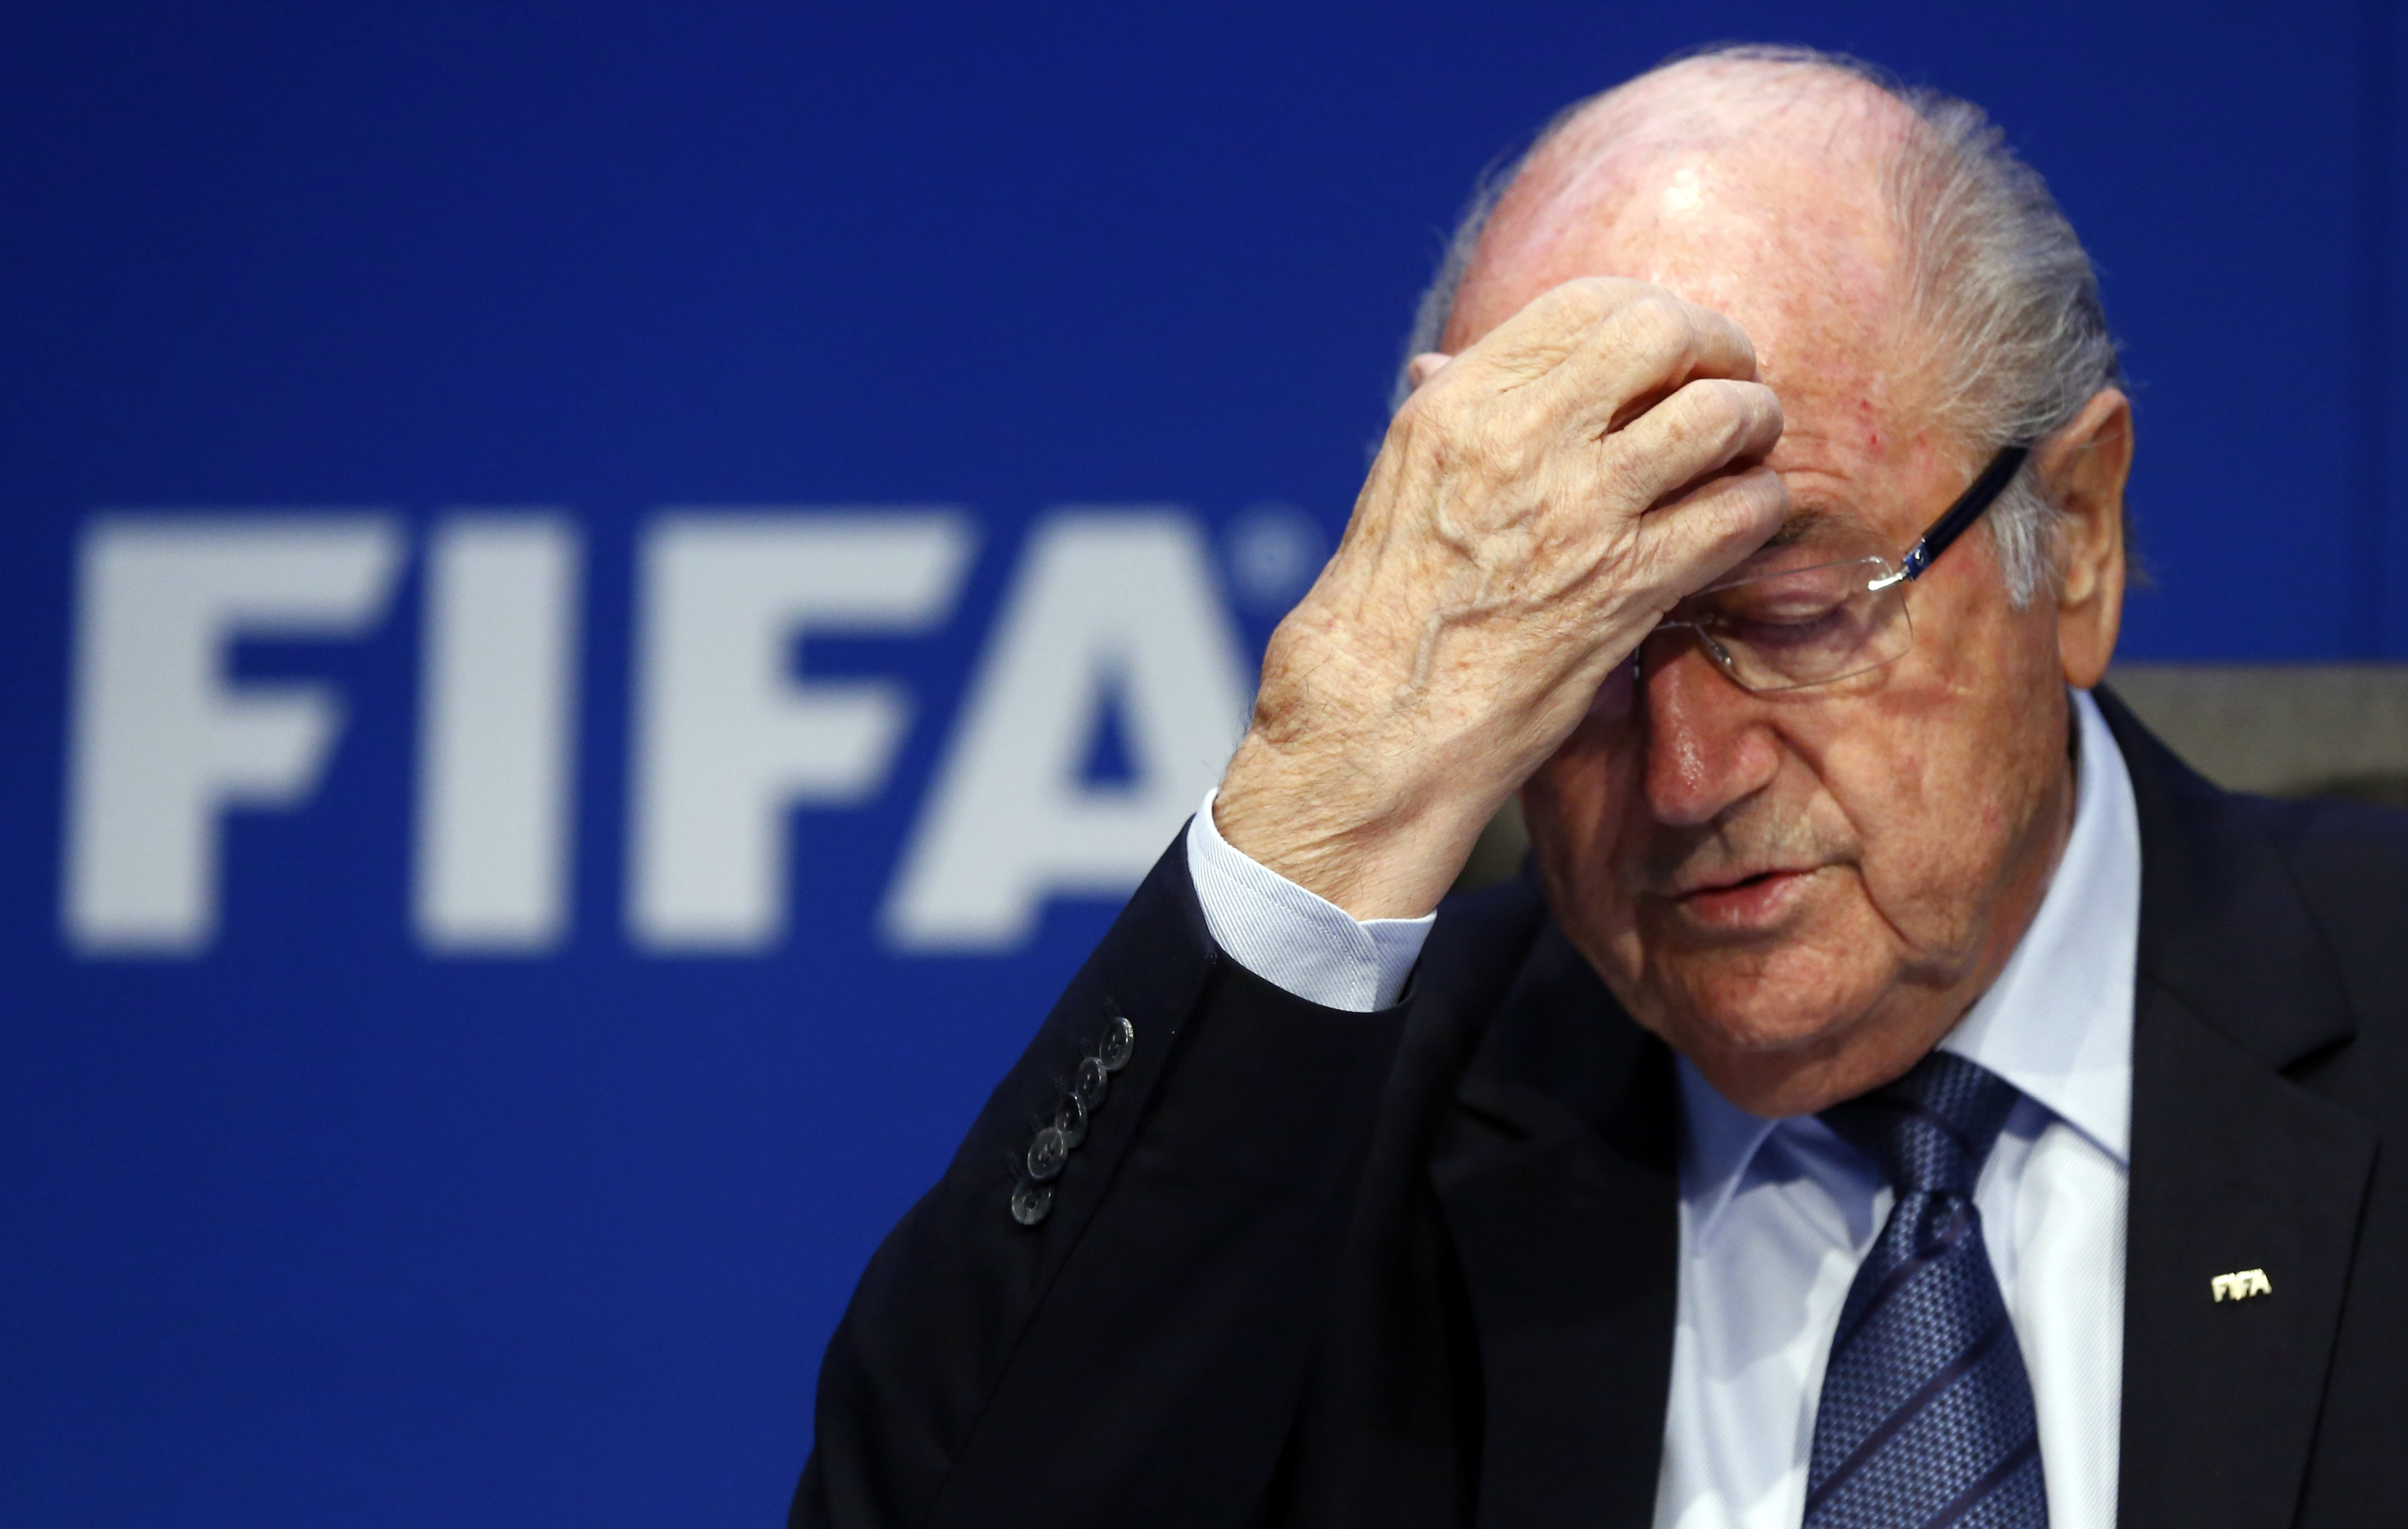 Re-elected FIFA President Sepp Blatter gestures during news conference after an extraordinary Executive Committee meeting in Zurich, Switzerland, in a May 30, 2015 file photo. The Coca-Cola Co called on Friday for FIFA's President Sepp Blatter to step down immediately following Swiss authorities saying they were opening a criminal investigation into the head of the world soccer body.    REUTERS/Arnd Wiegmann/Files